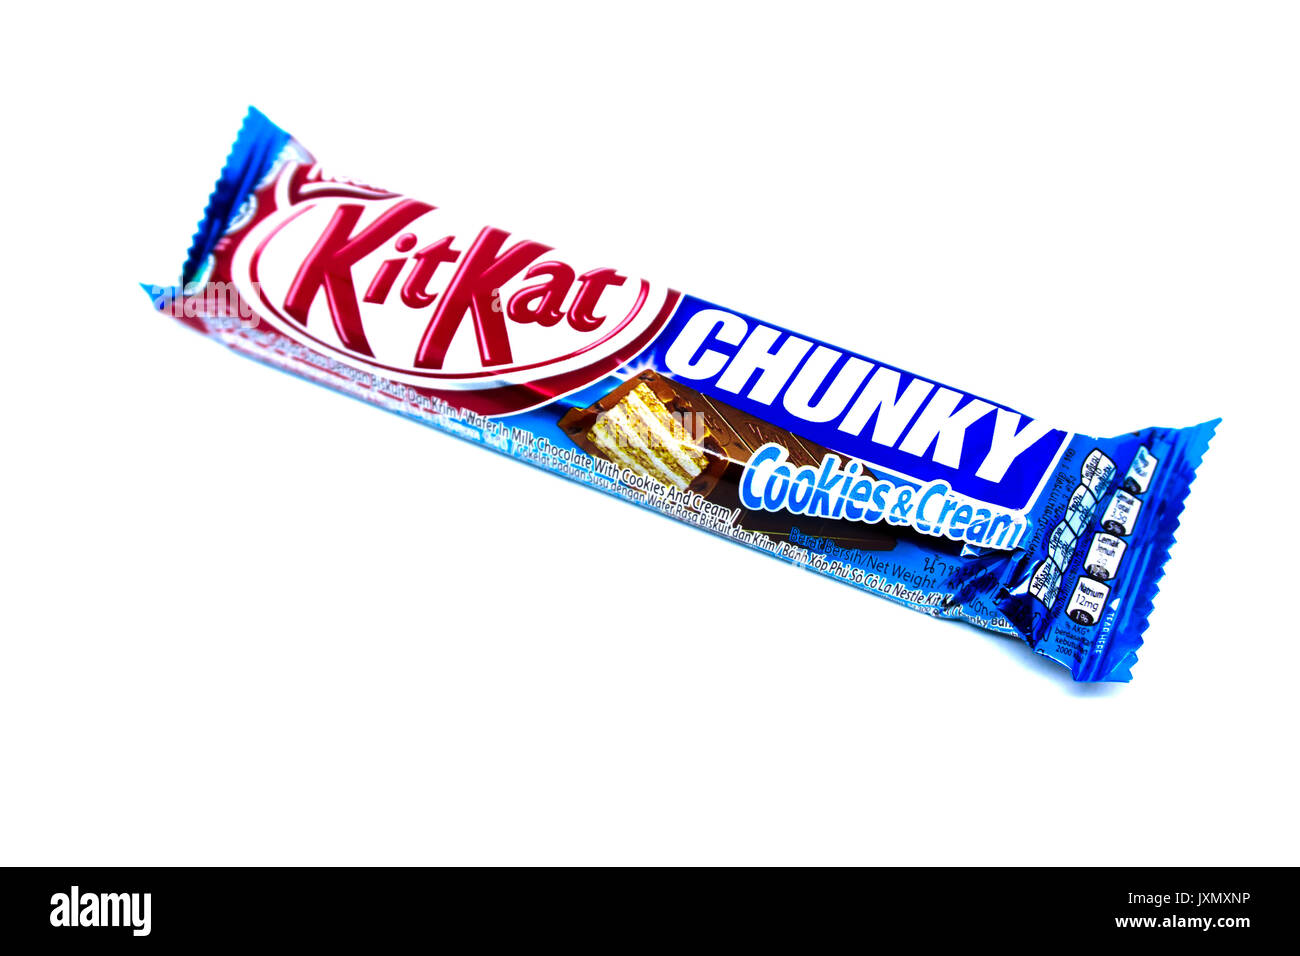 Kota Kinabalu, Malaysia - August 16, 2017: Kit Kat Chunky Cookies and Cream flavored isolated on white background. Kit Kat bars are produced by Nestle - Stock Image